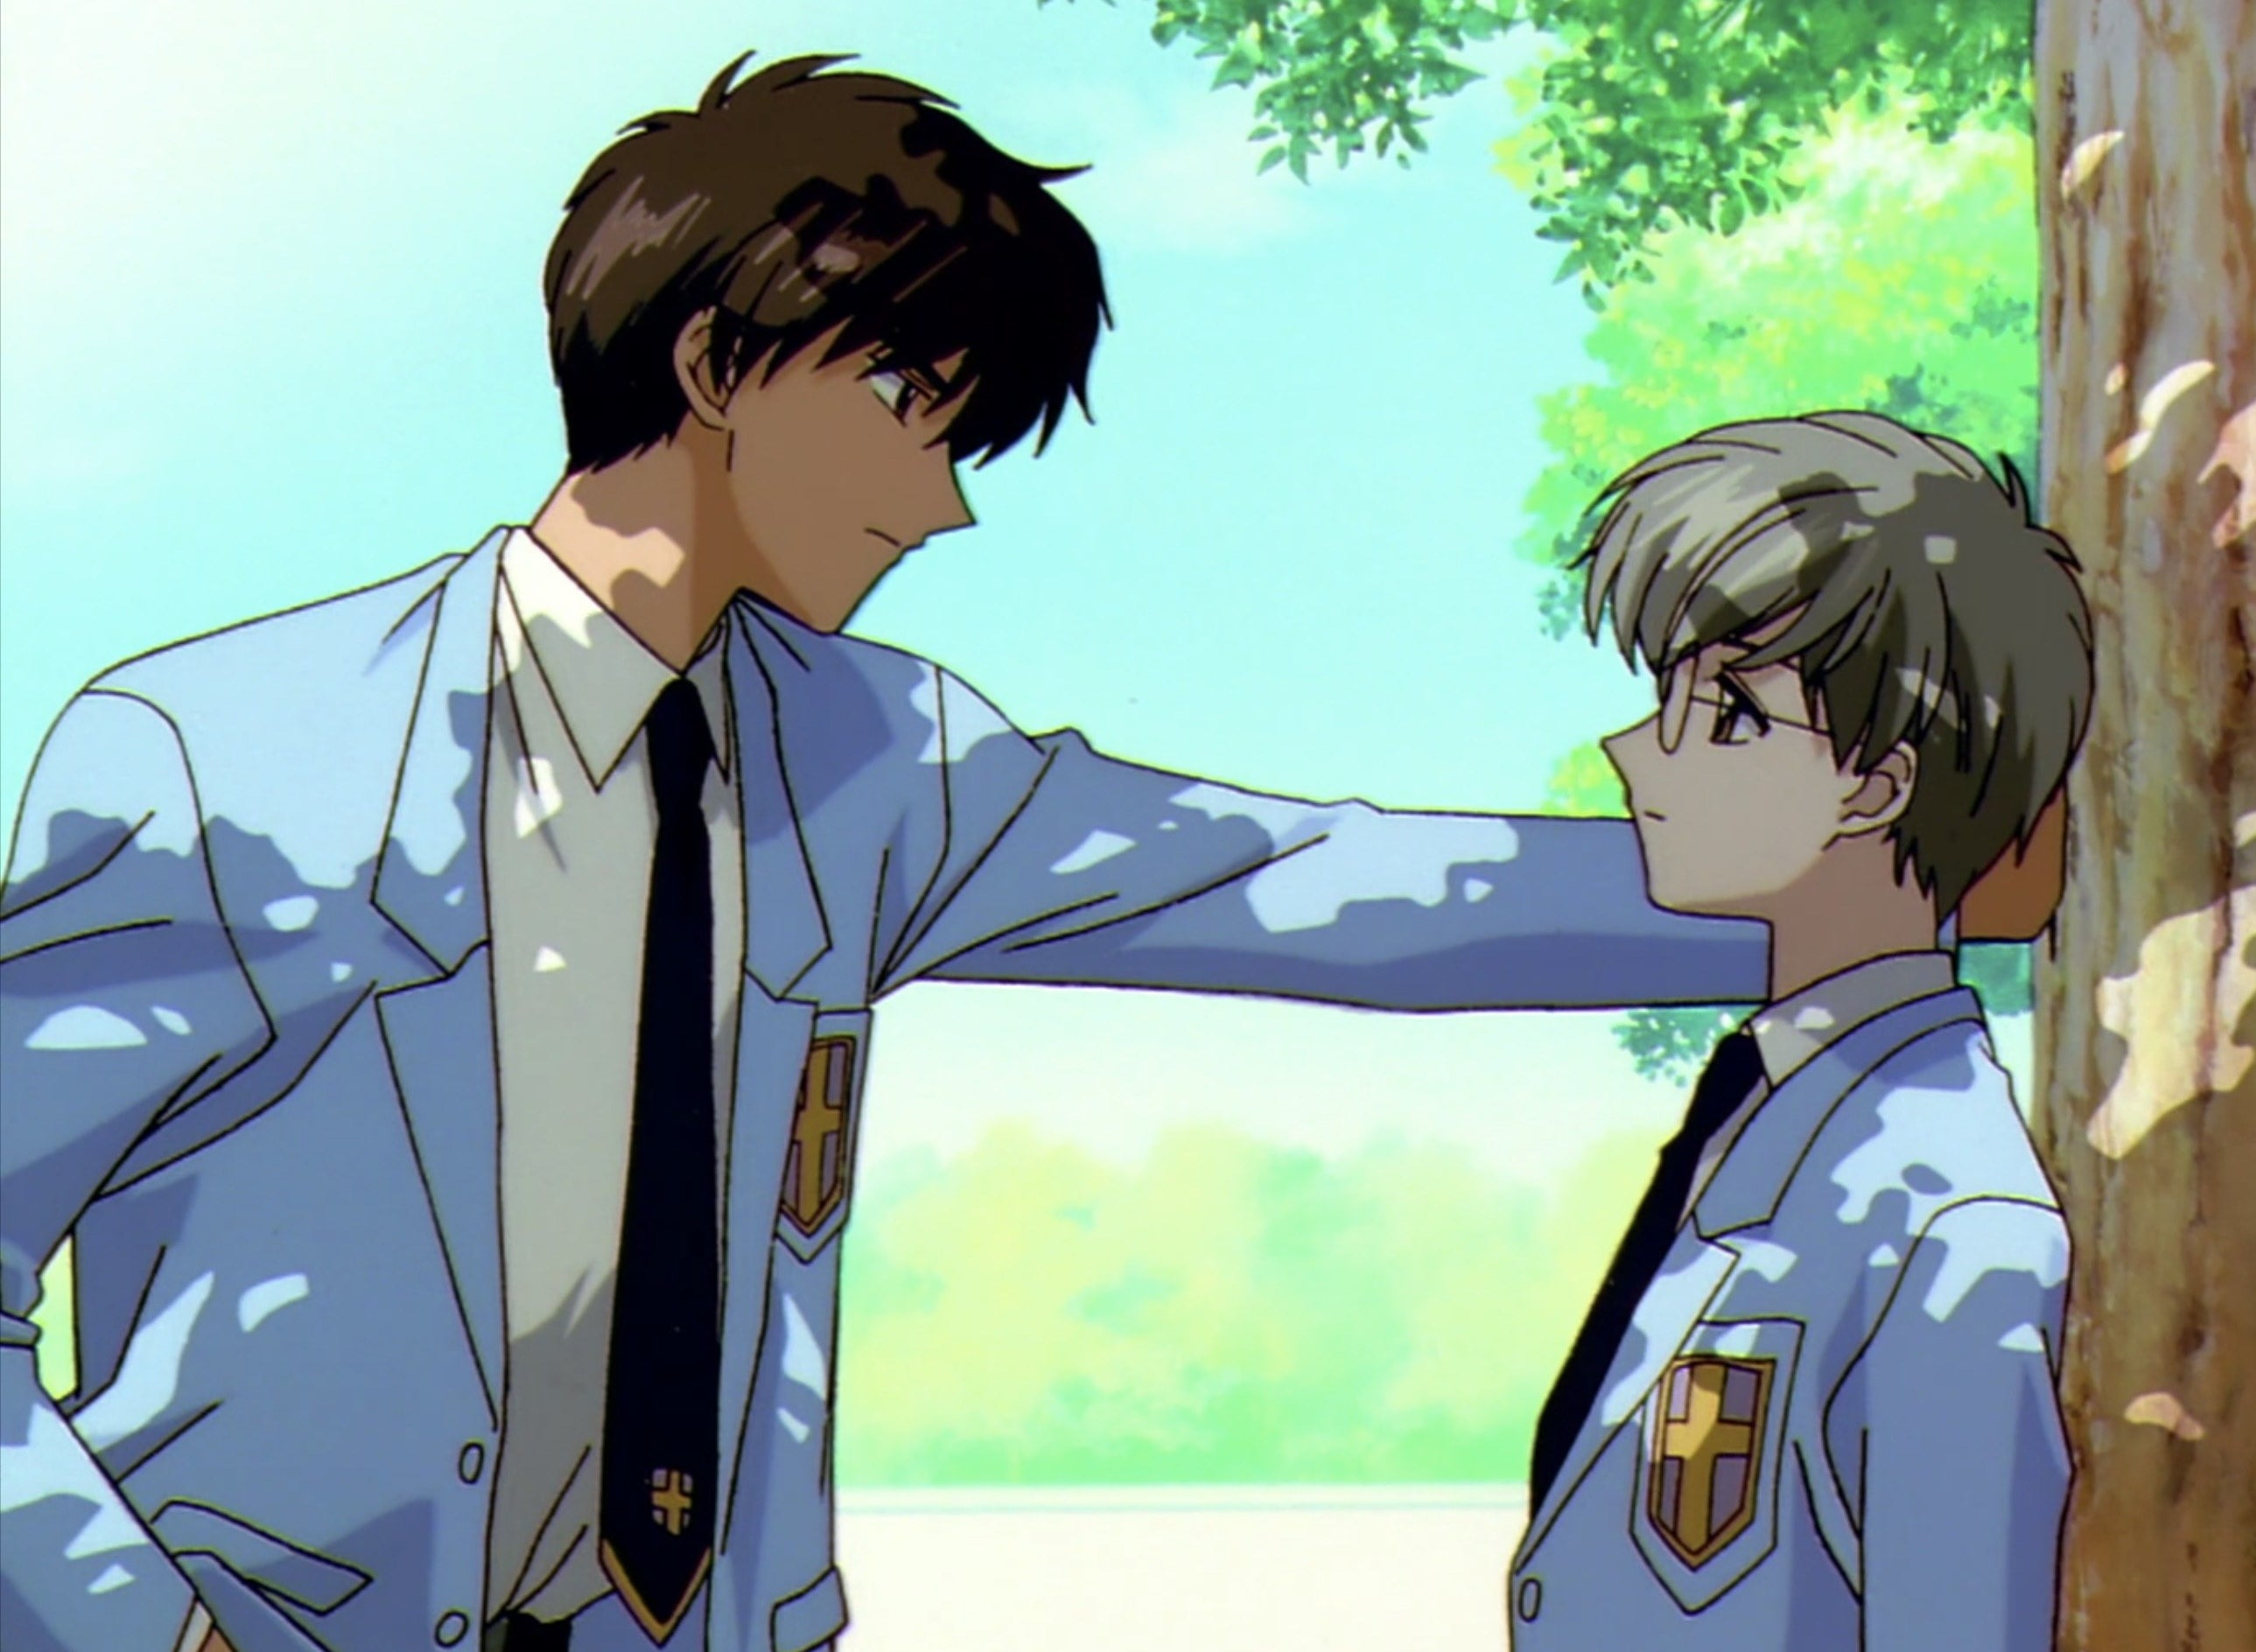 Touya leaning into Yukito as they talk under the trees.